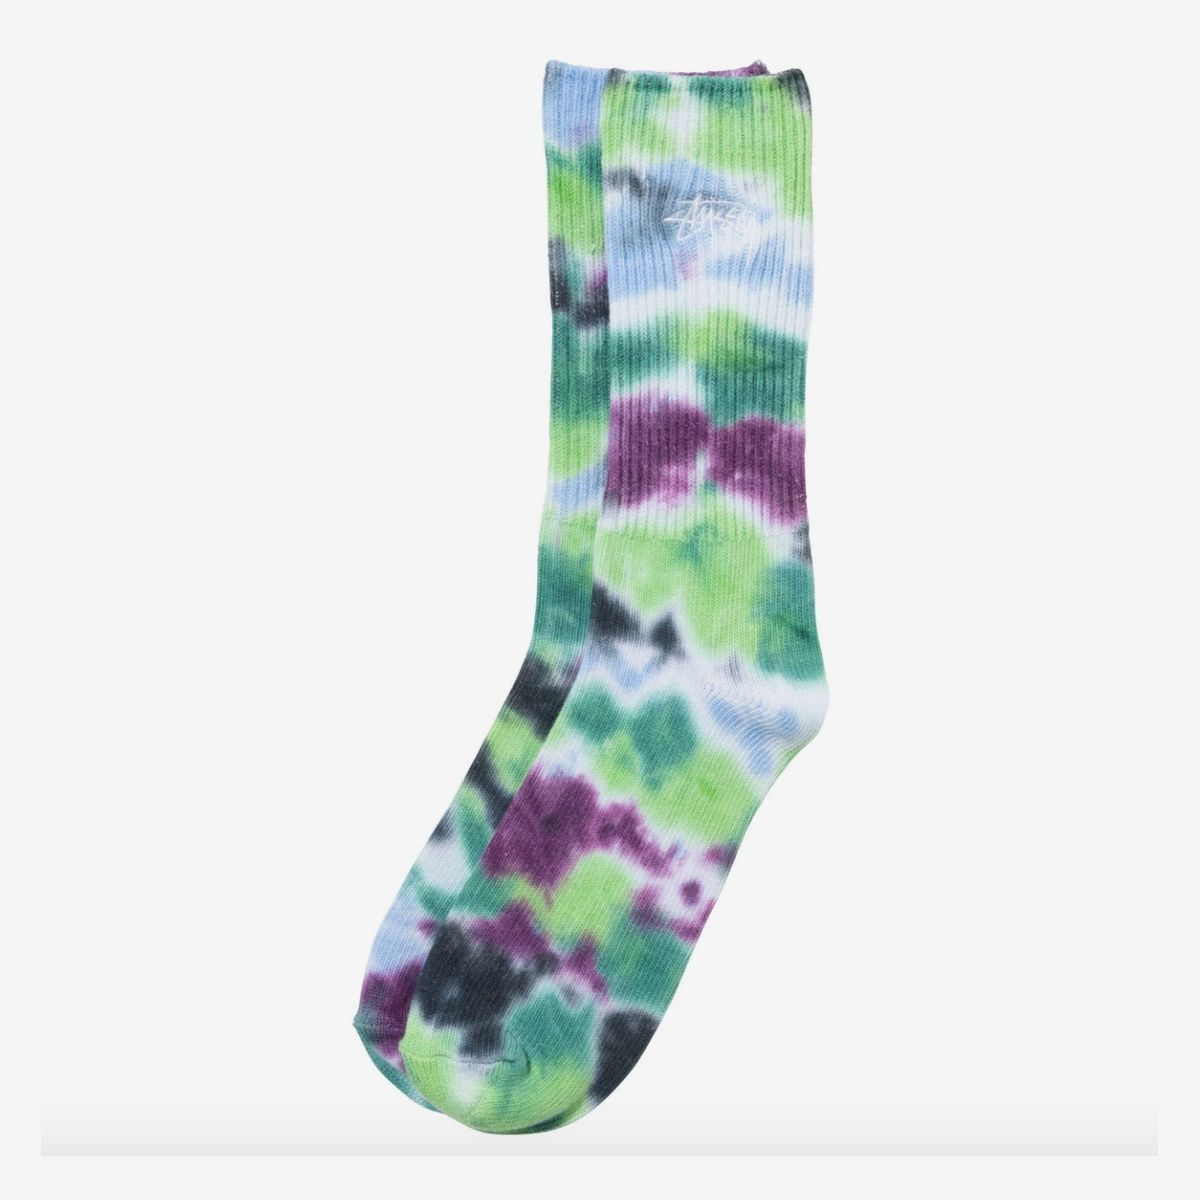 Soft Purple Flowers Colorful Low Cut Liner Socks with Good Quanlity for Teenagers